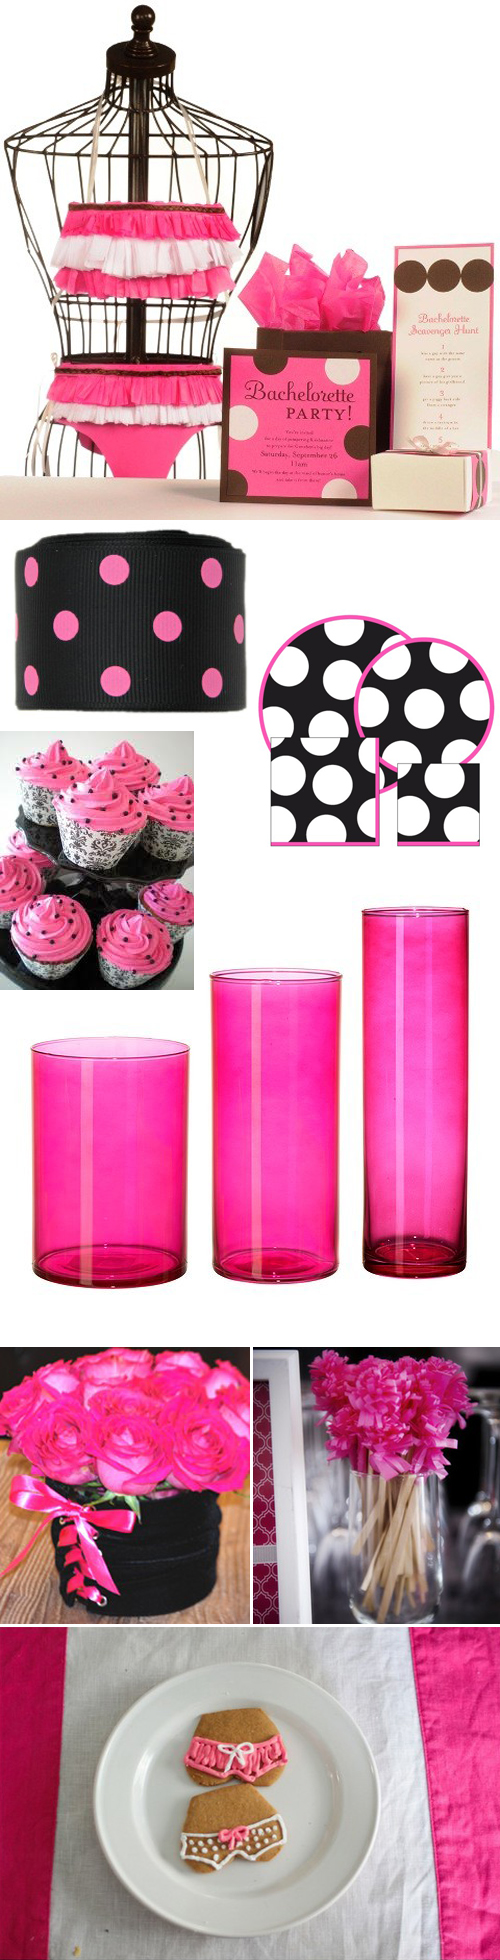 Hot Pink and Black Bachelorette Party Theme and Inspiration Board